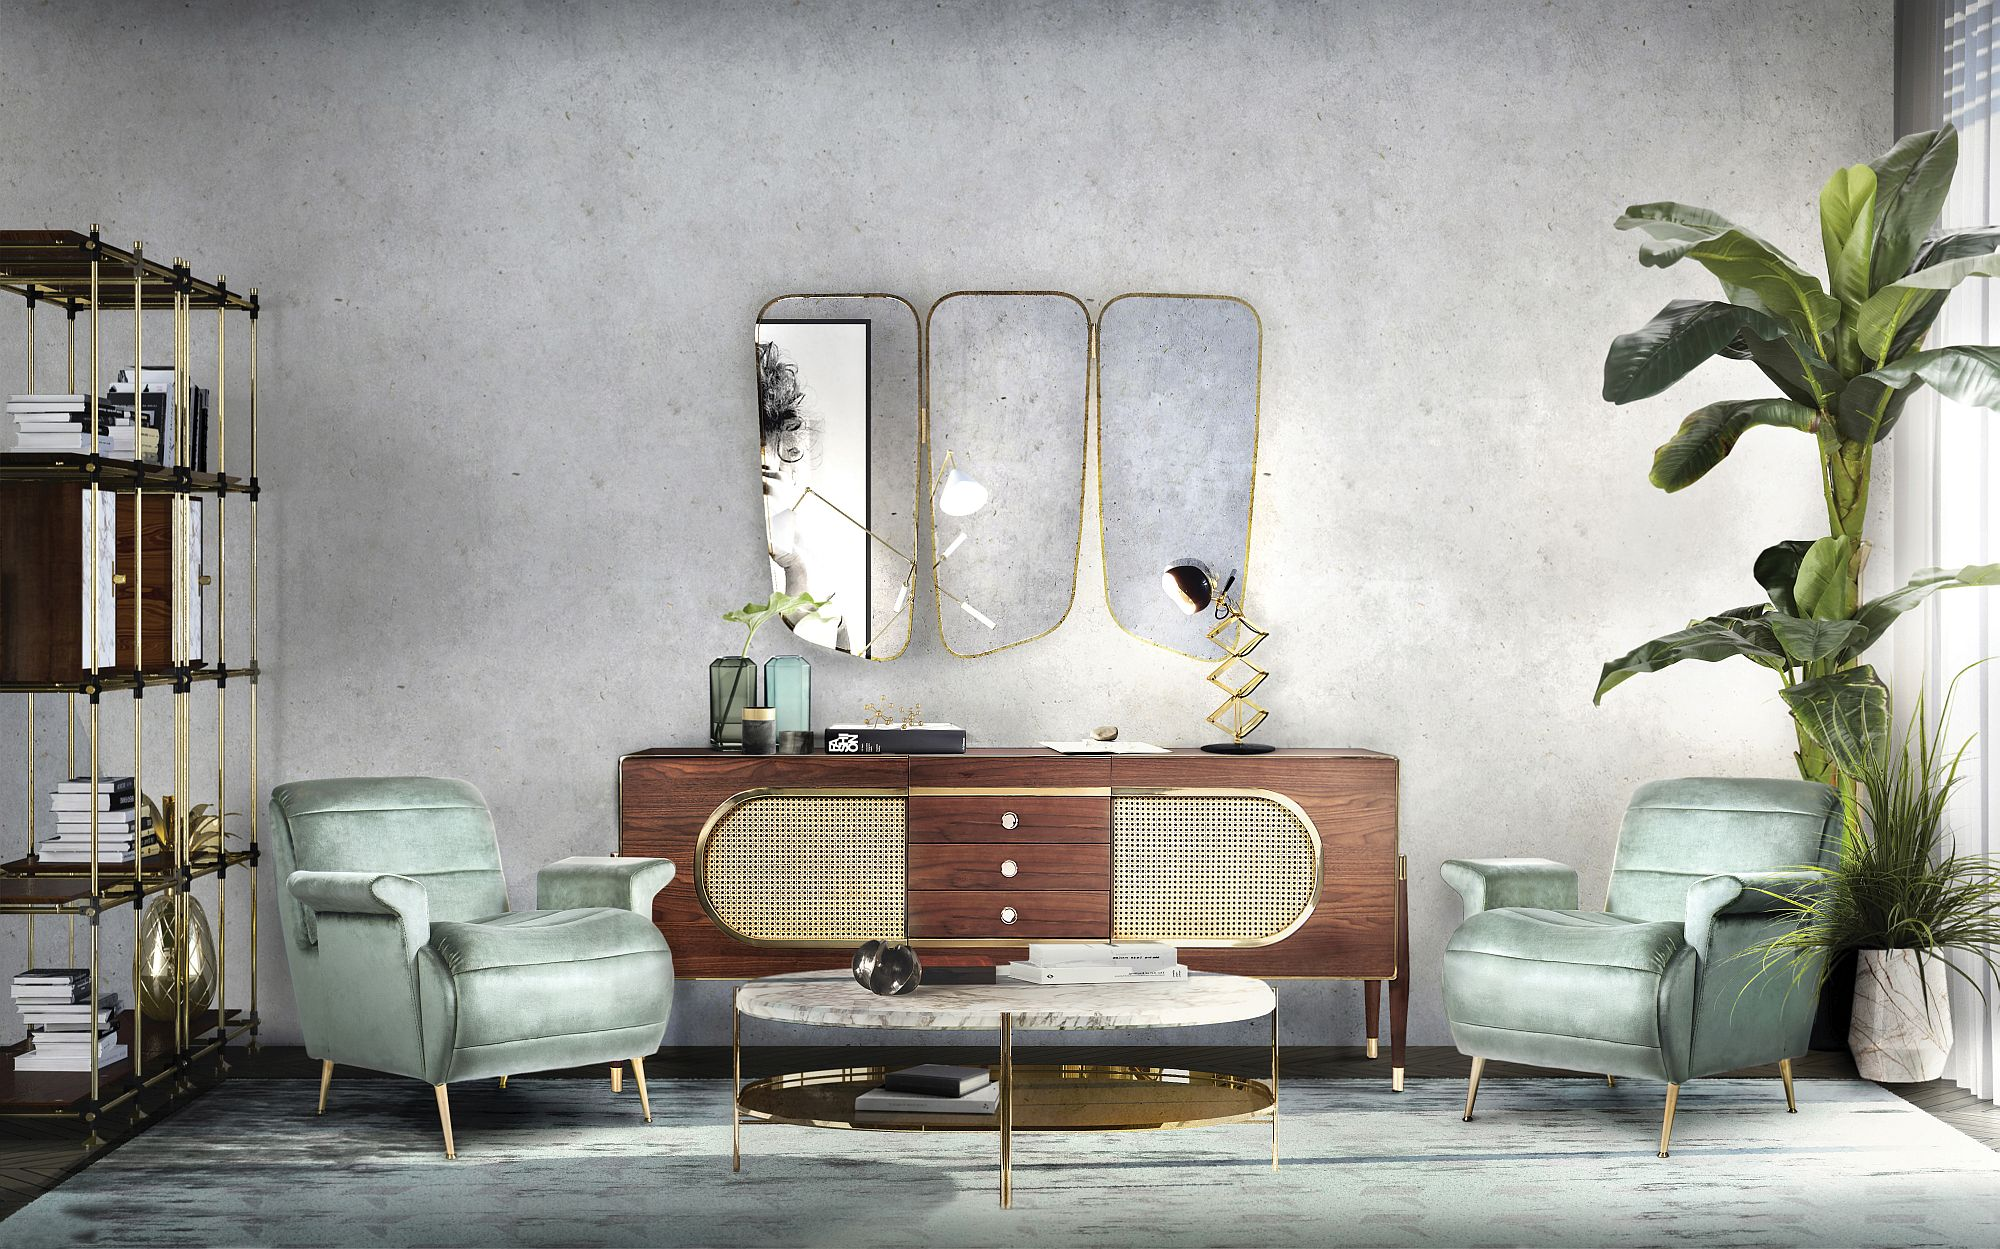 Steal The Look: Sit Back and Relax in Your New Living Room Décor!